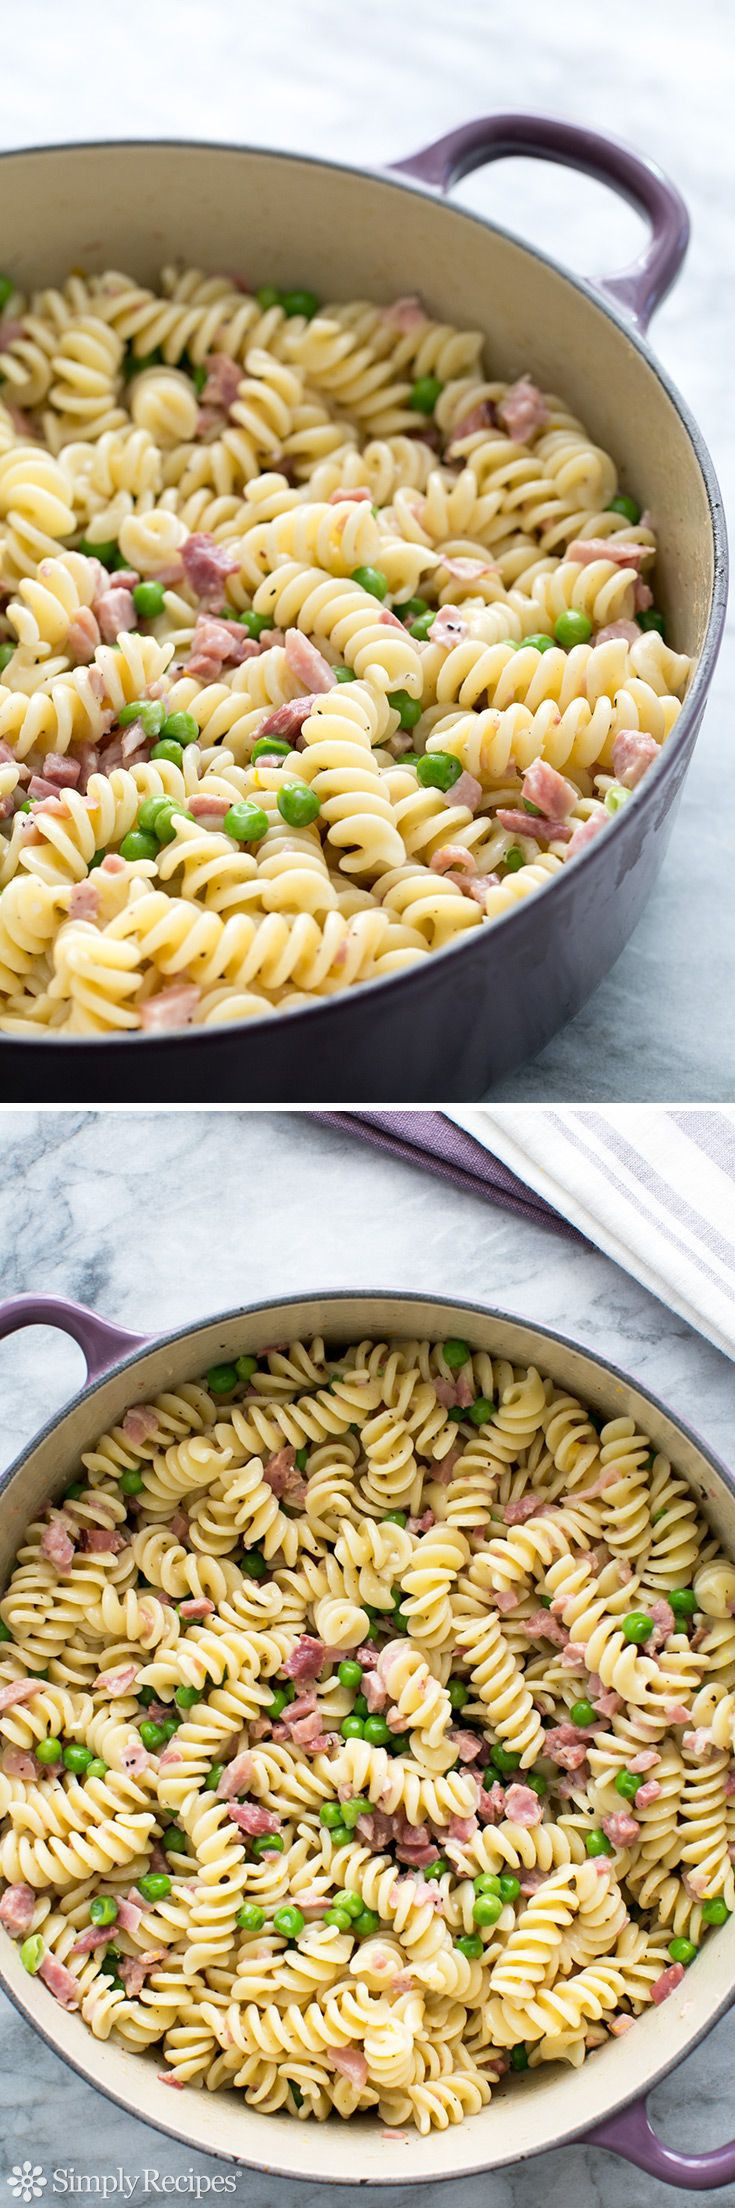 Healthy Leftover Ham Recipes  Pasta with Ham and Peas Great use for leftover ham